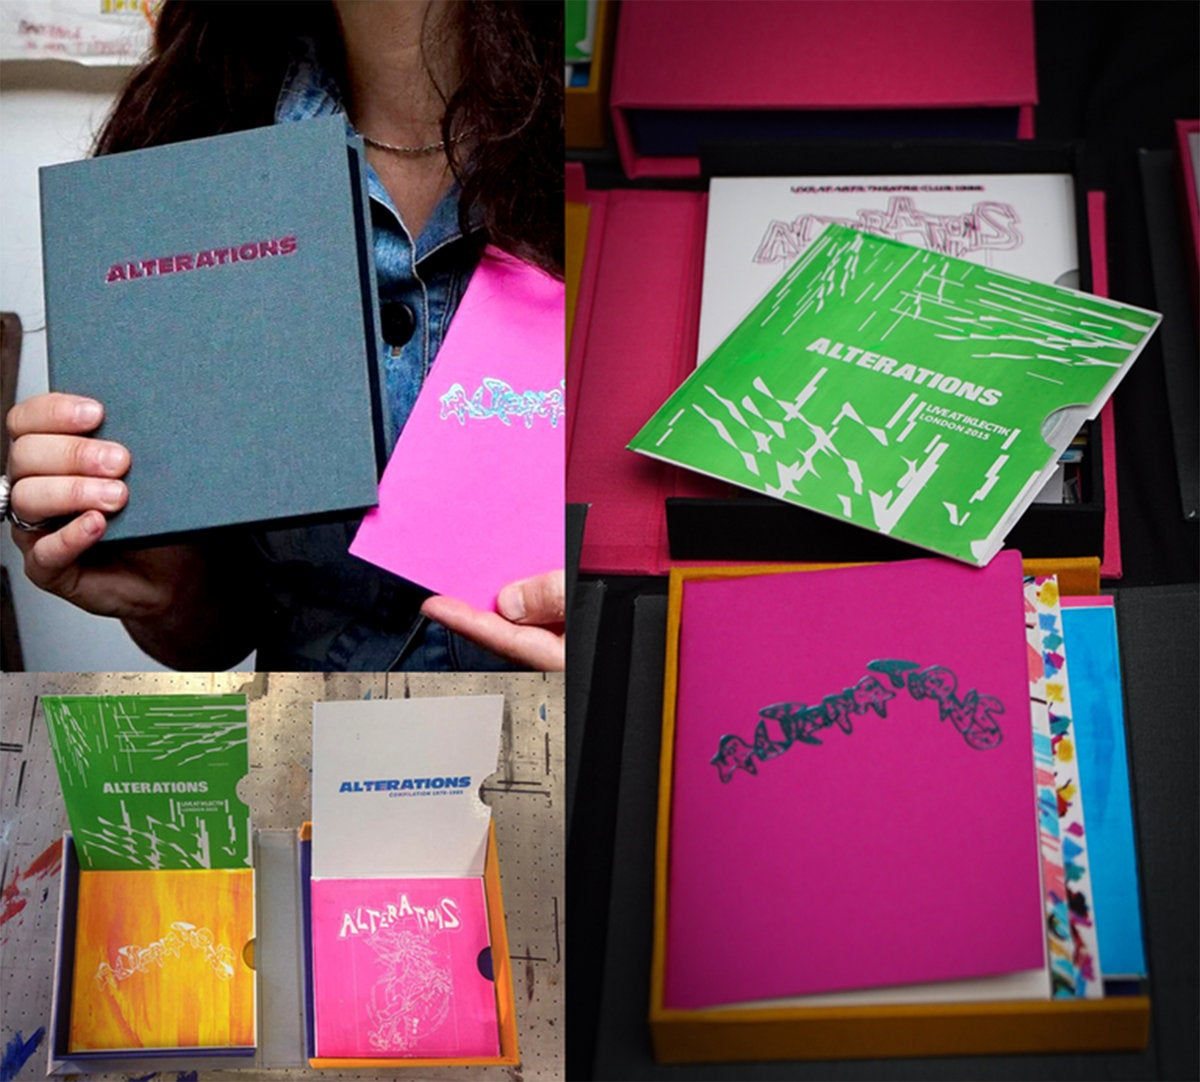 Alterations Limited Edition Boxset